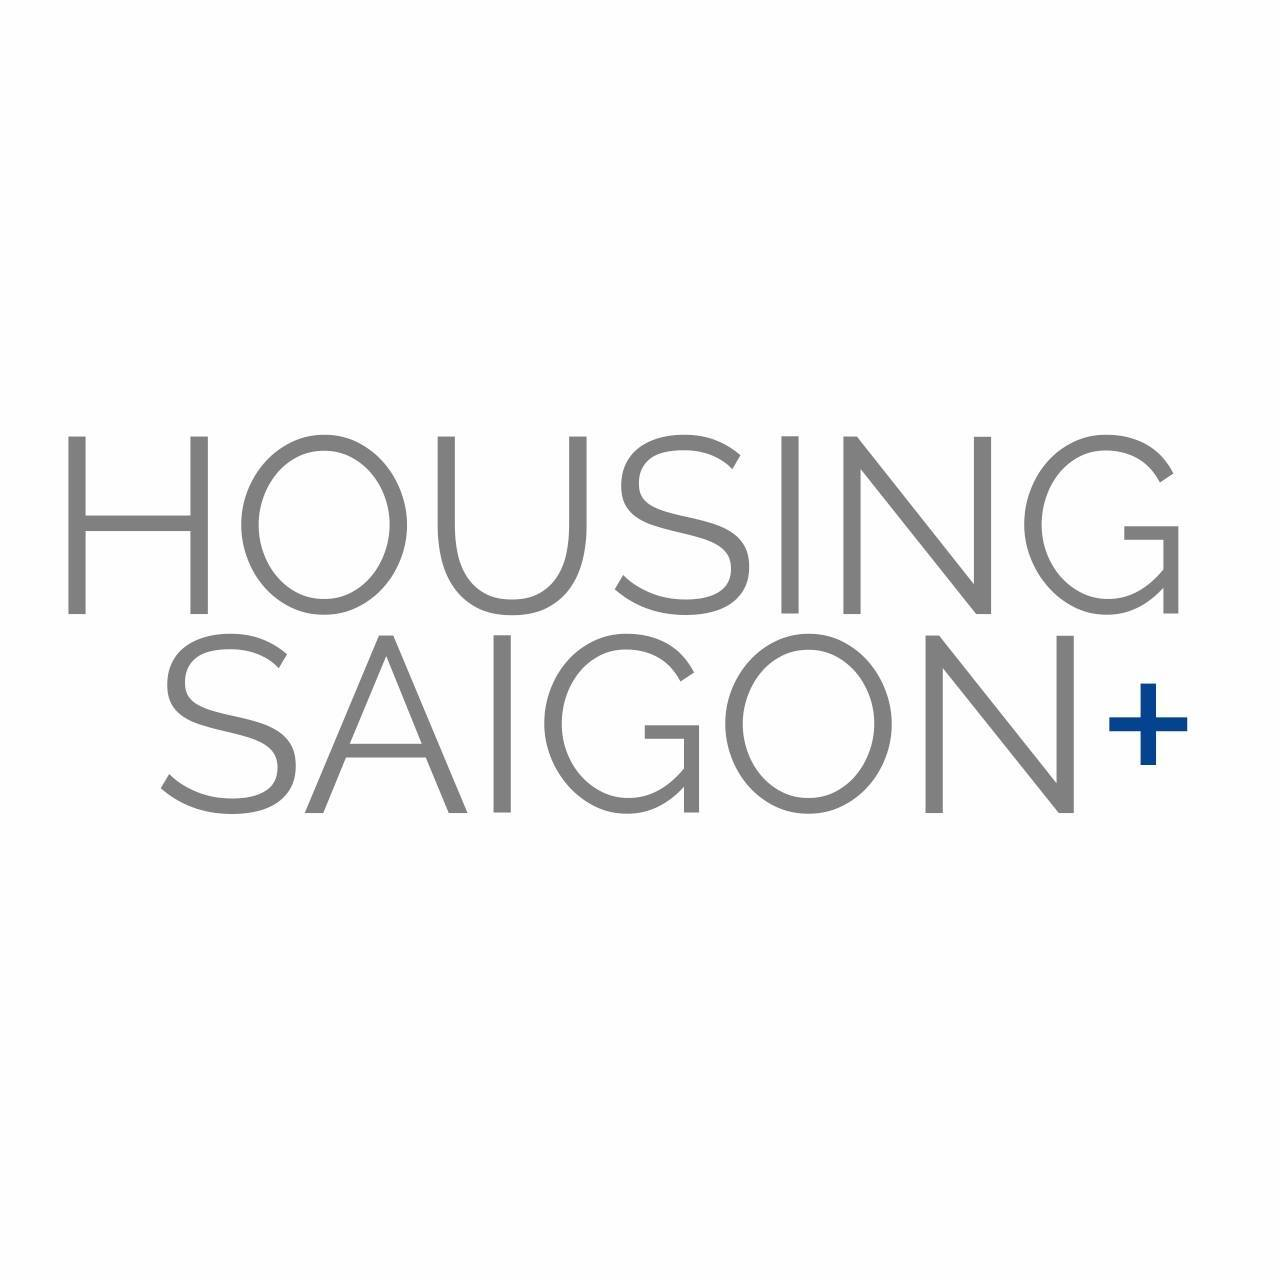 Housing Saigon